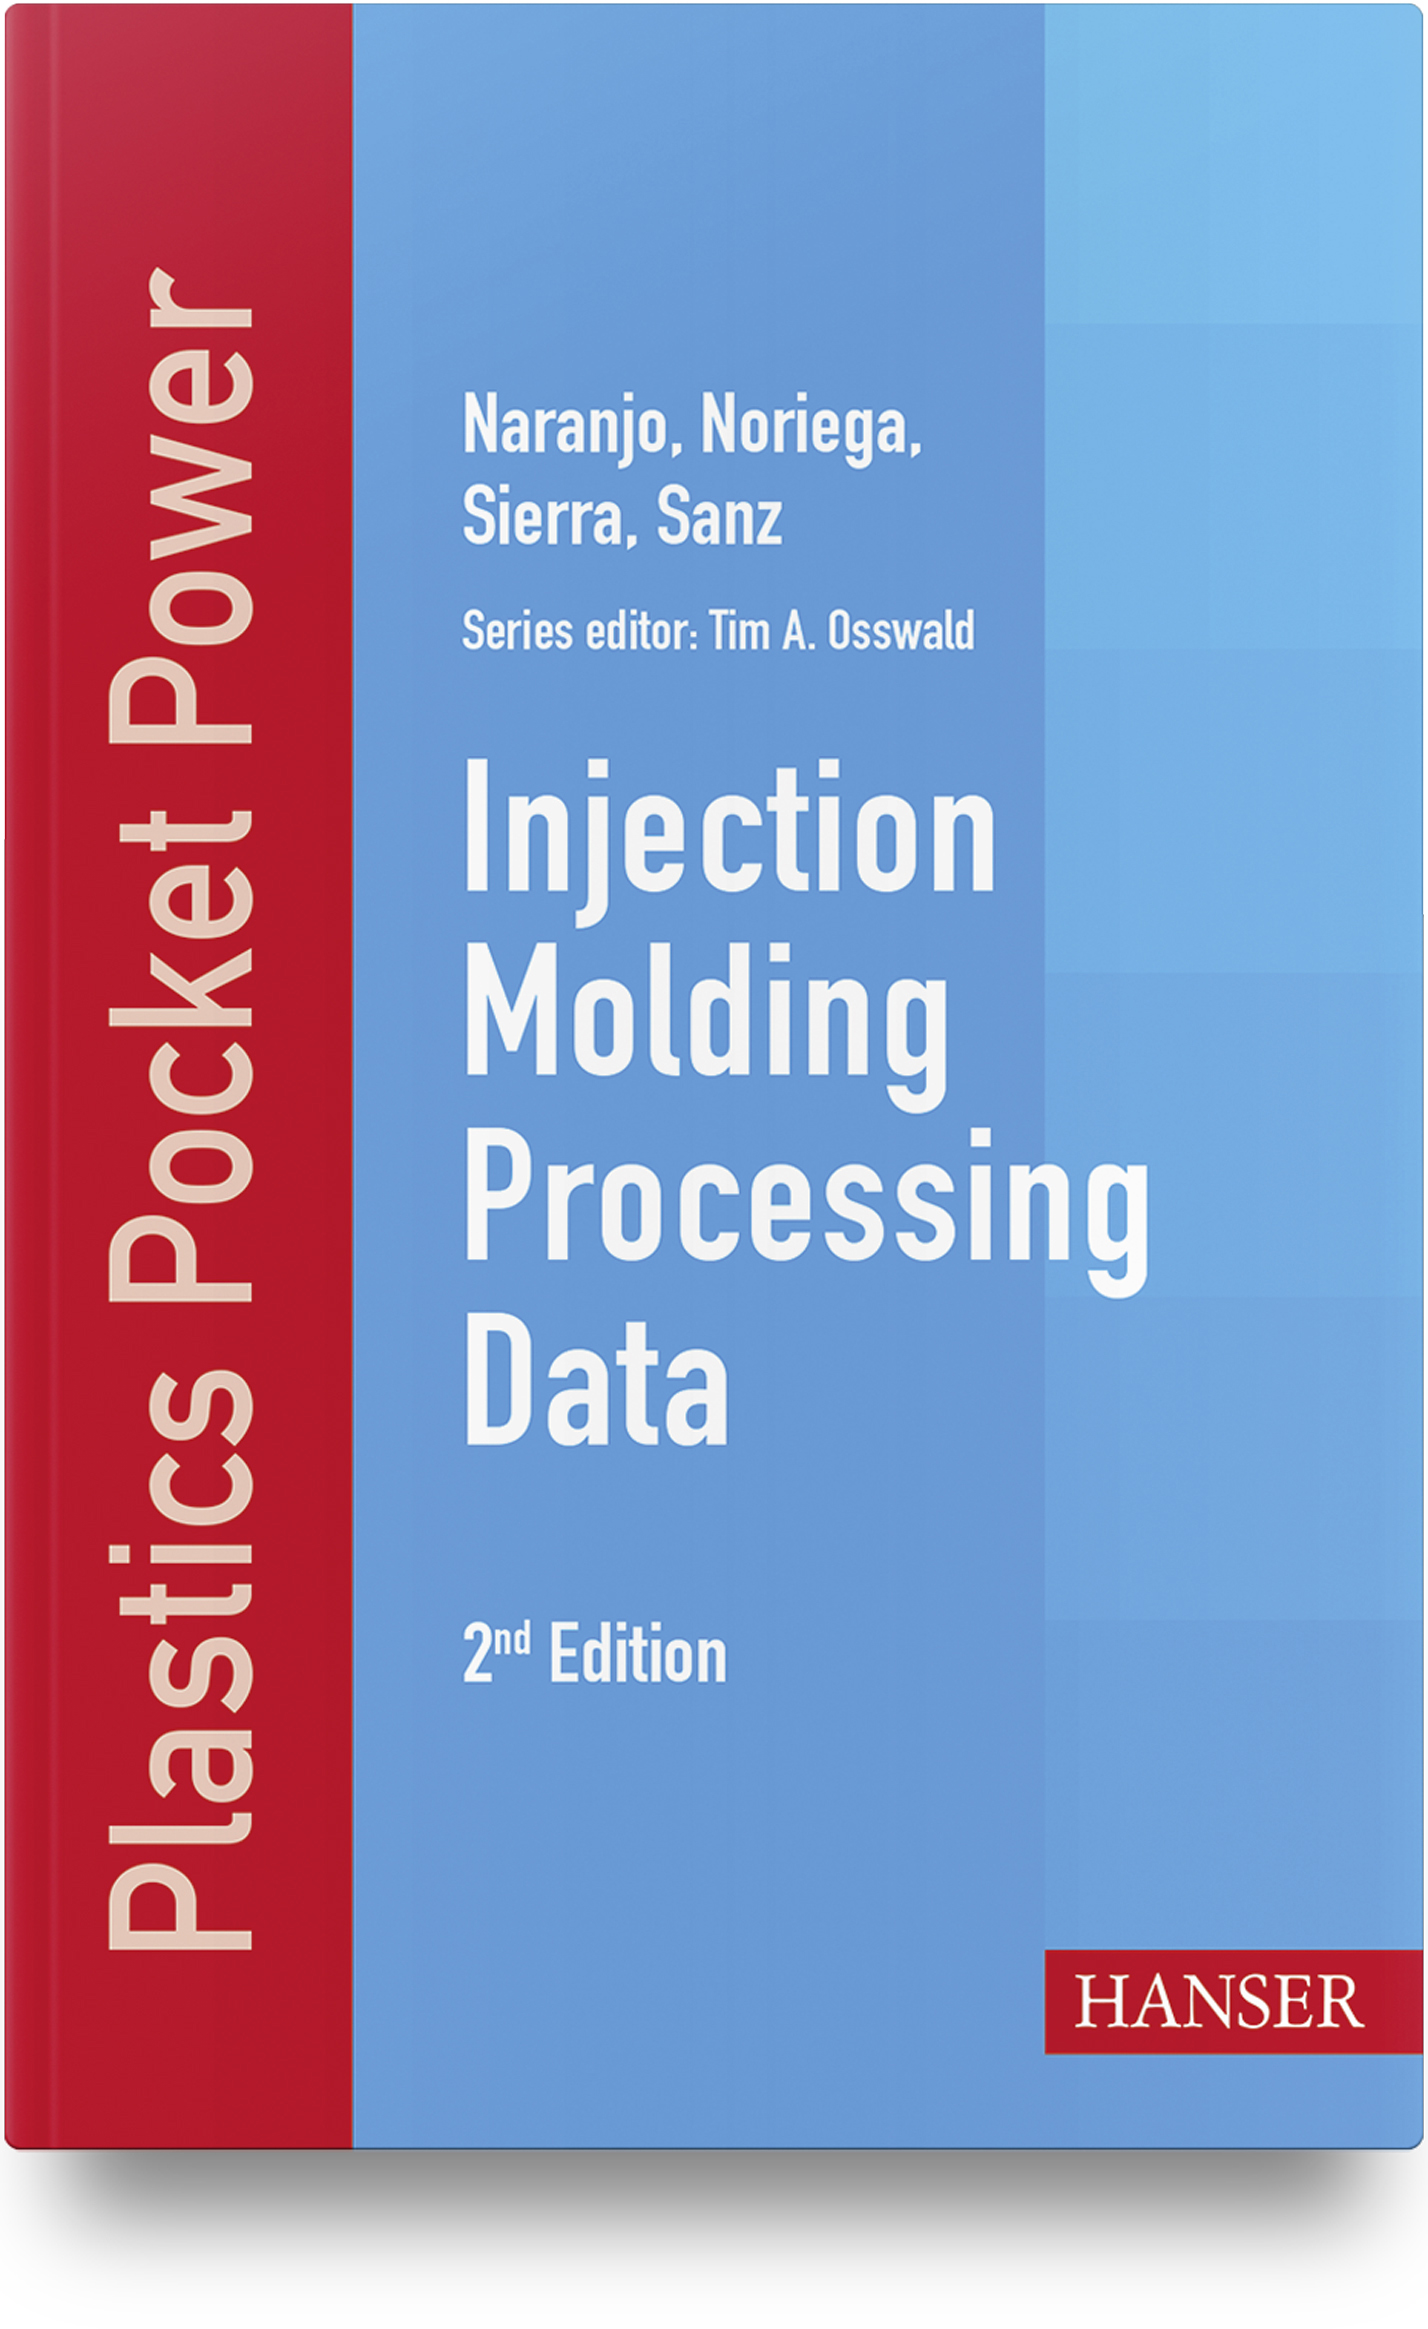 Naranjo C., Pilar Noriega E., Sierra M., Sanz, Injection Molding Processing Data, 978-1-56990-666-8